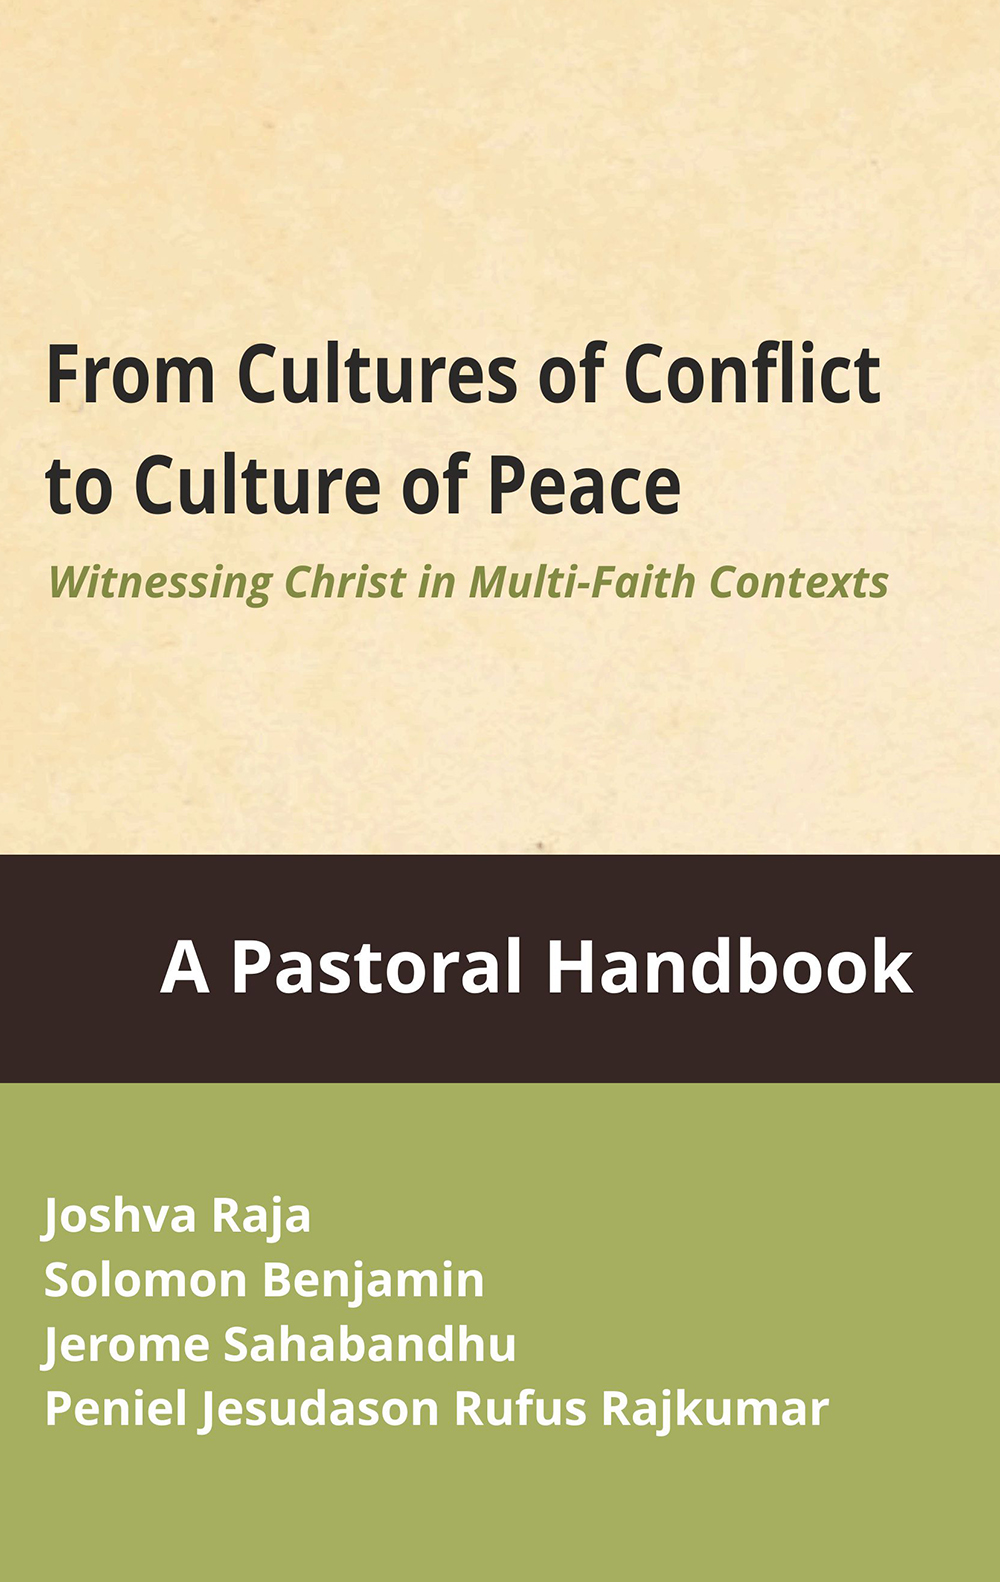 From Cultures of Conflicts to Culture of Peace